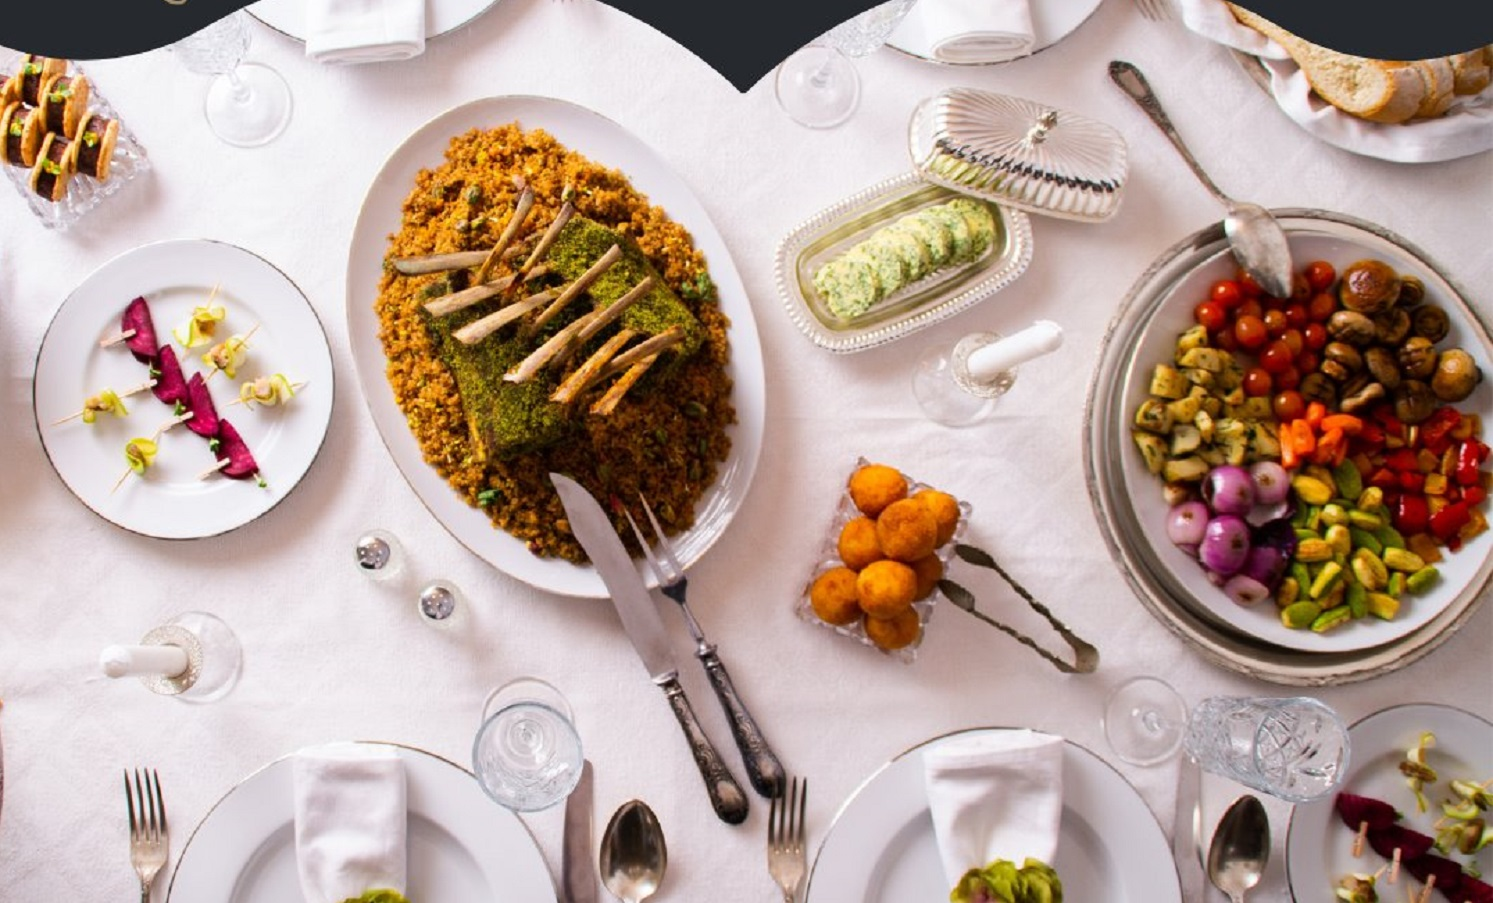 Planning a Private Gathering? Here Are 10 Places That Offer Catering Services